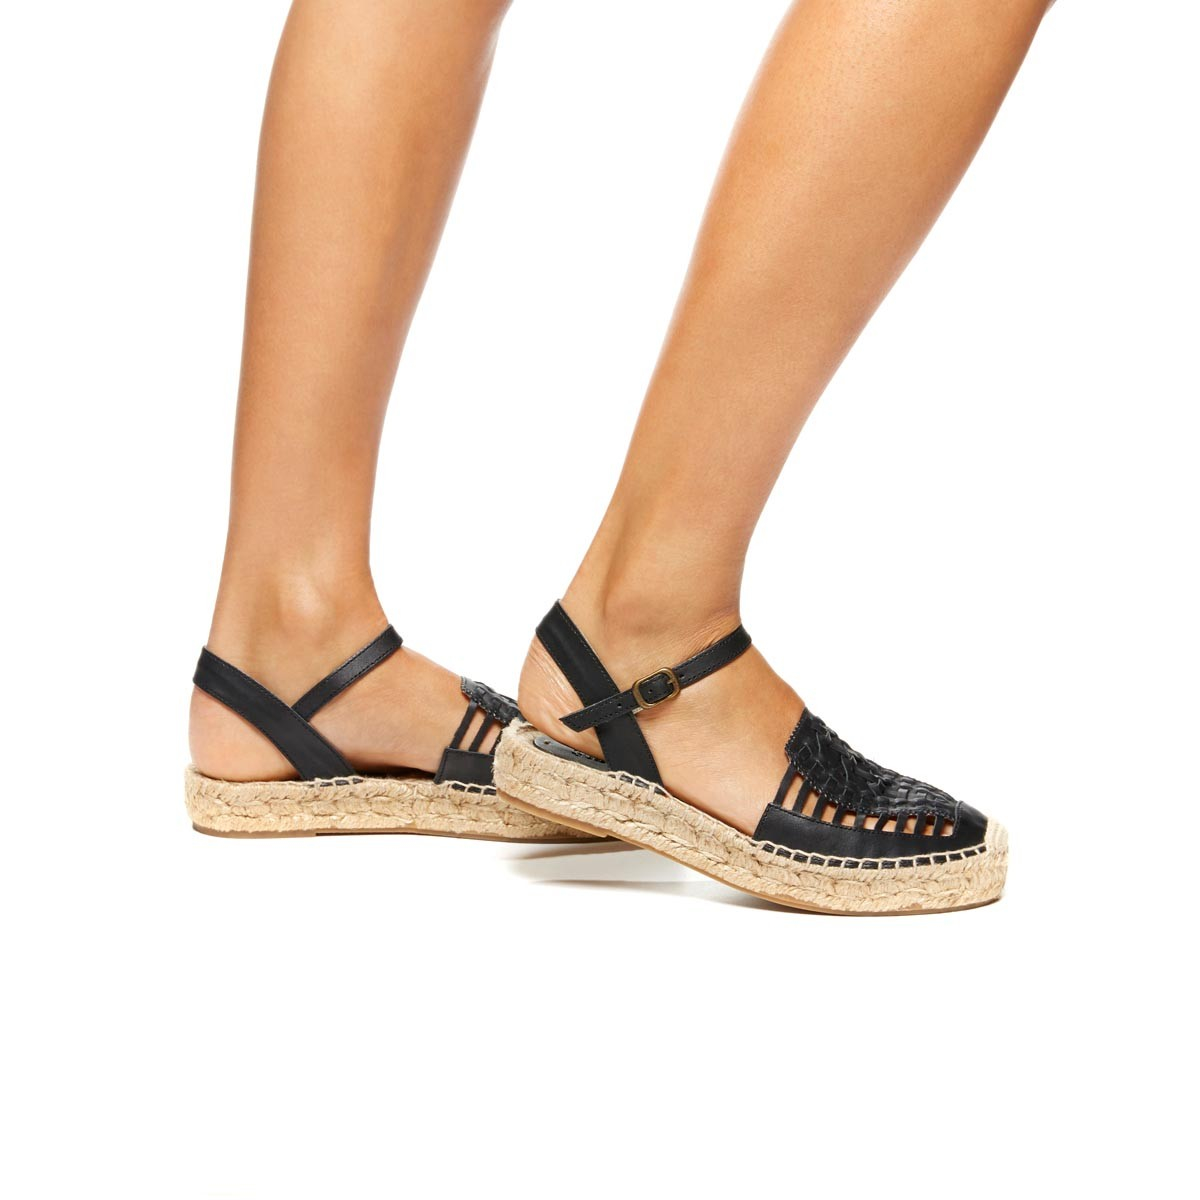 5c0412f210499 Lyst - Soludos Leather Platform Huarache Sandal in Black